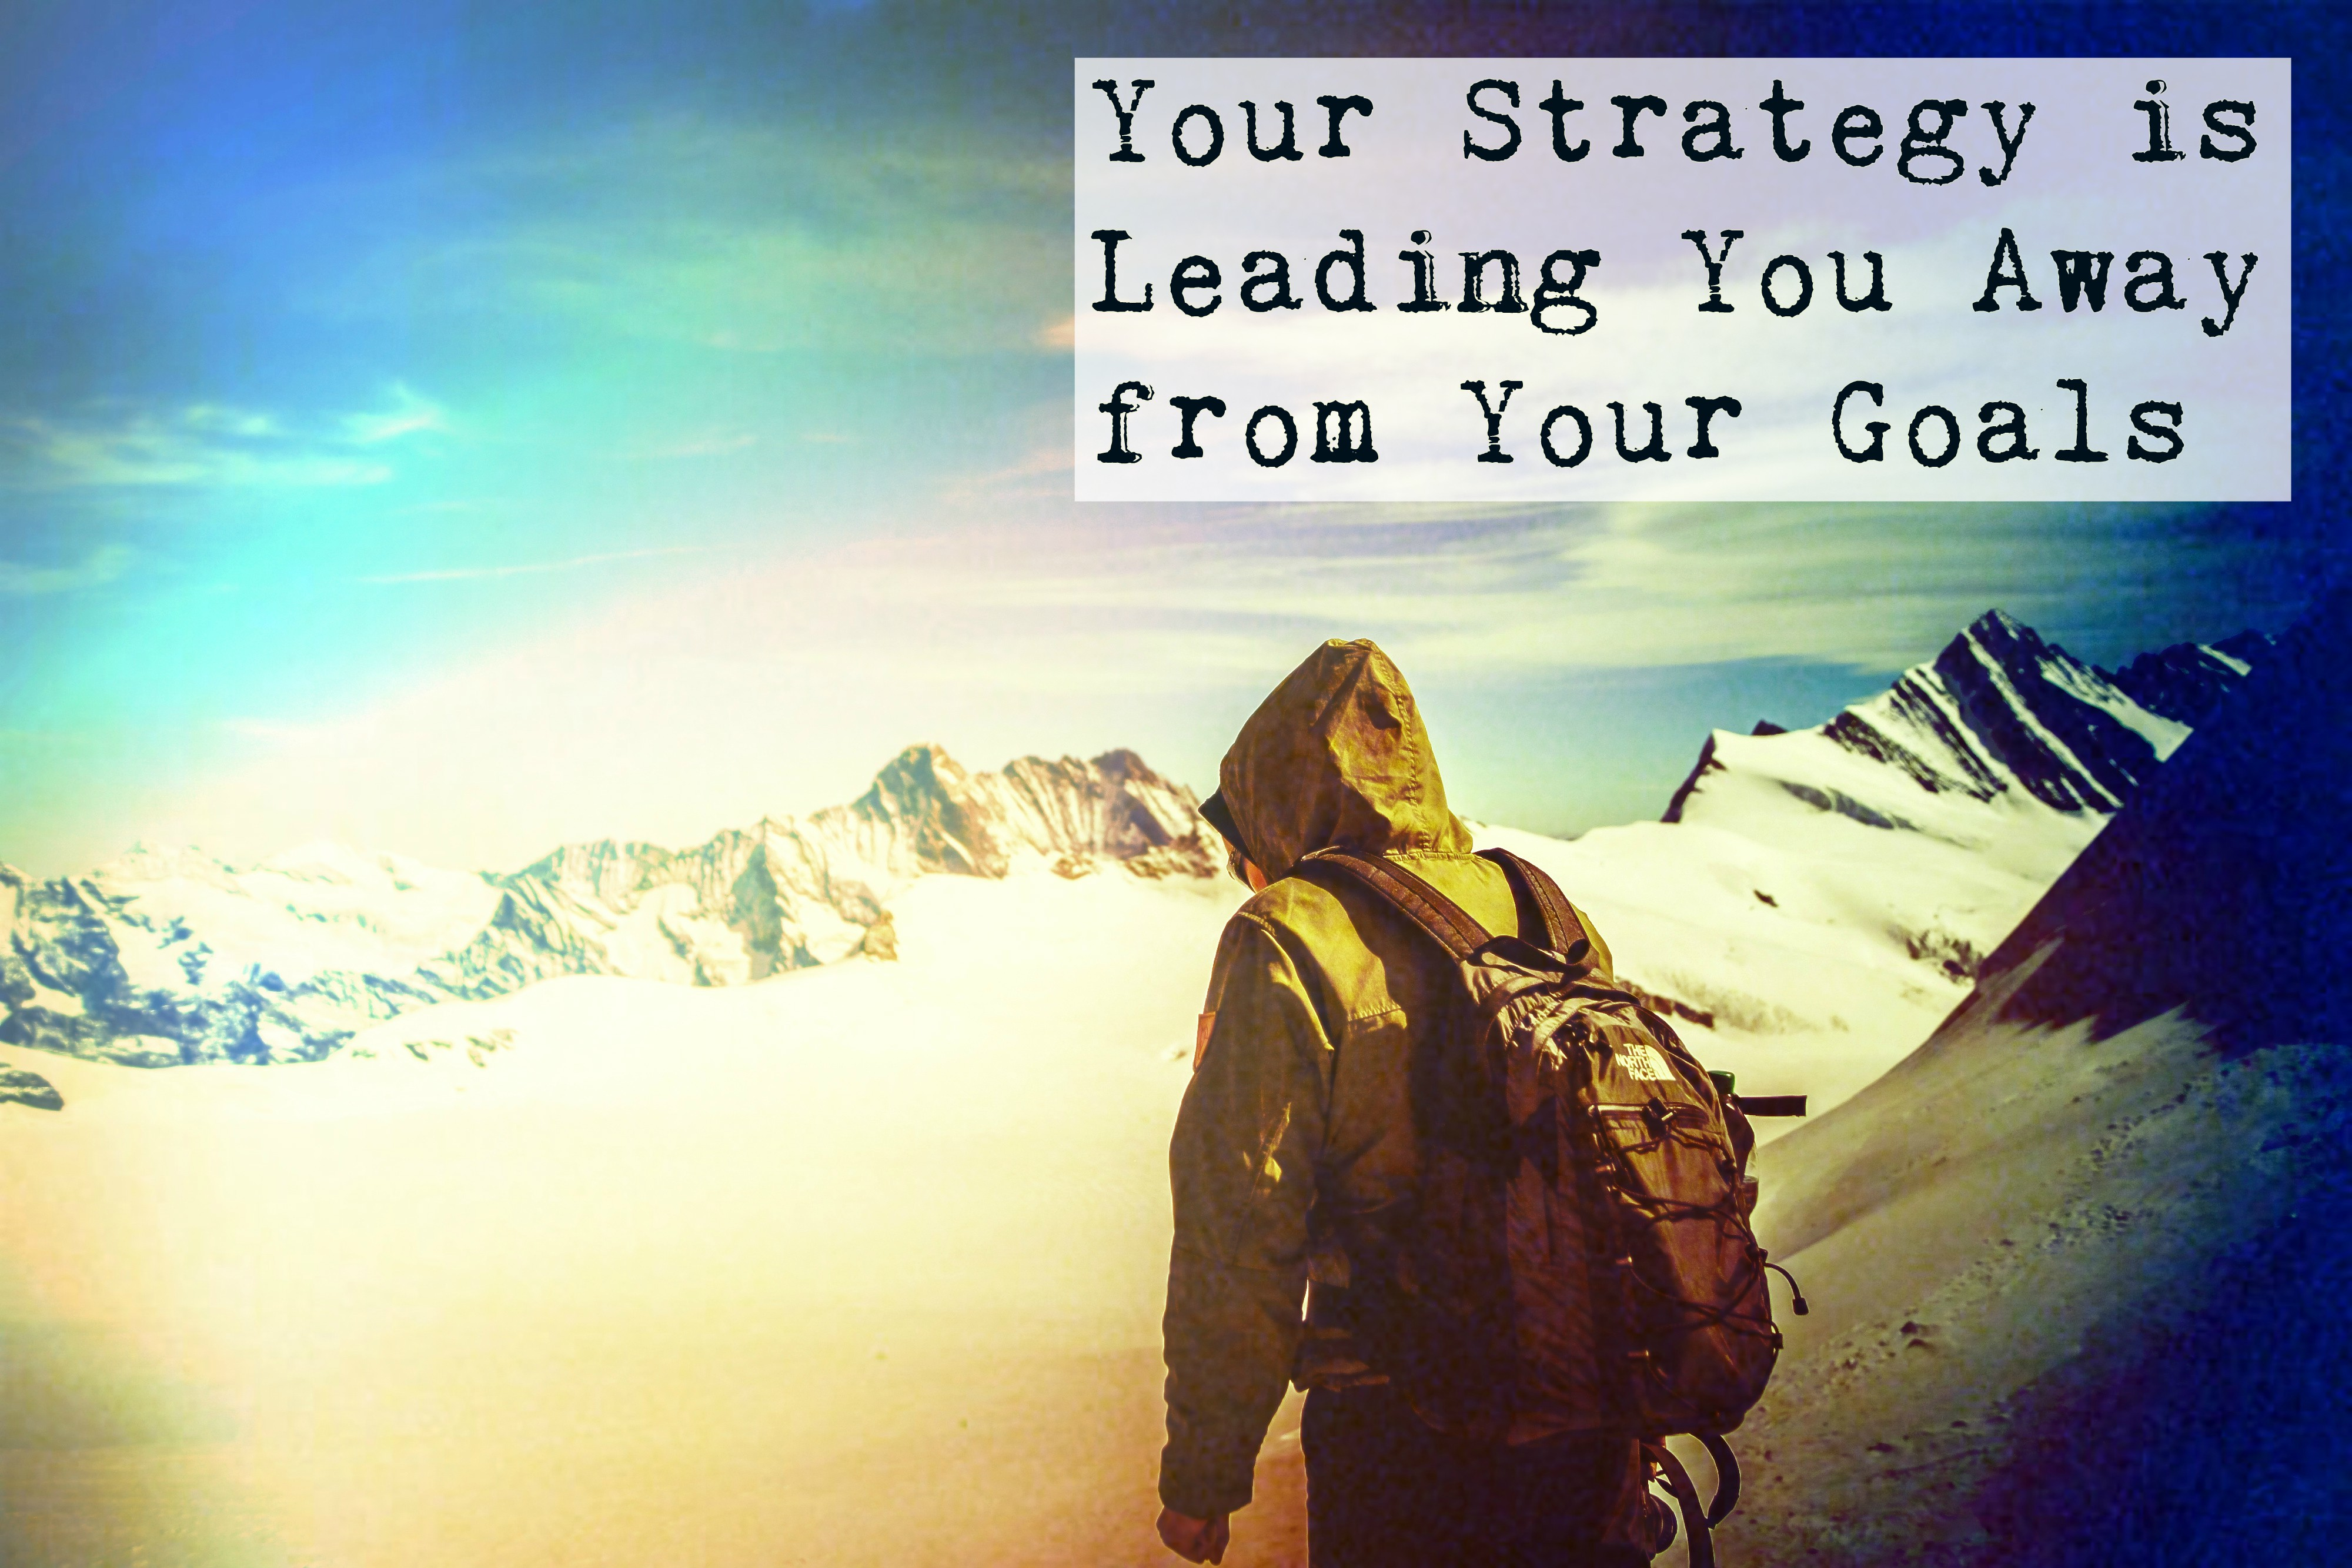 Your Strategy is Leading You Away From Your Goals